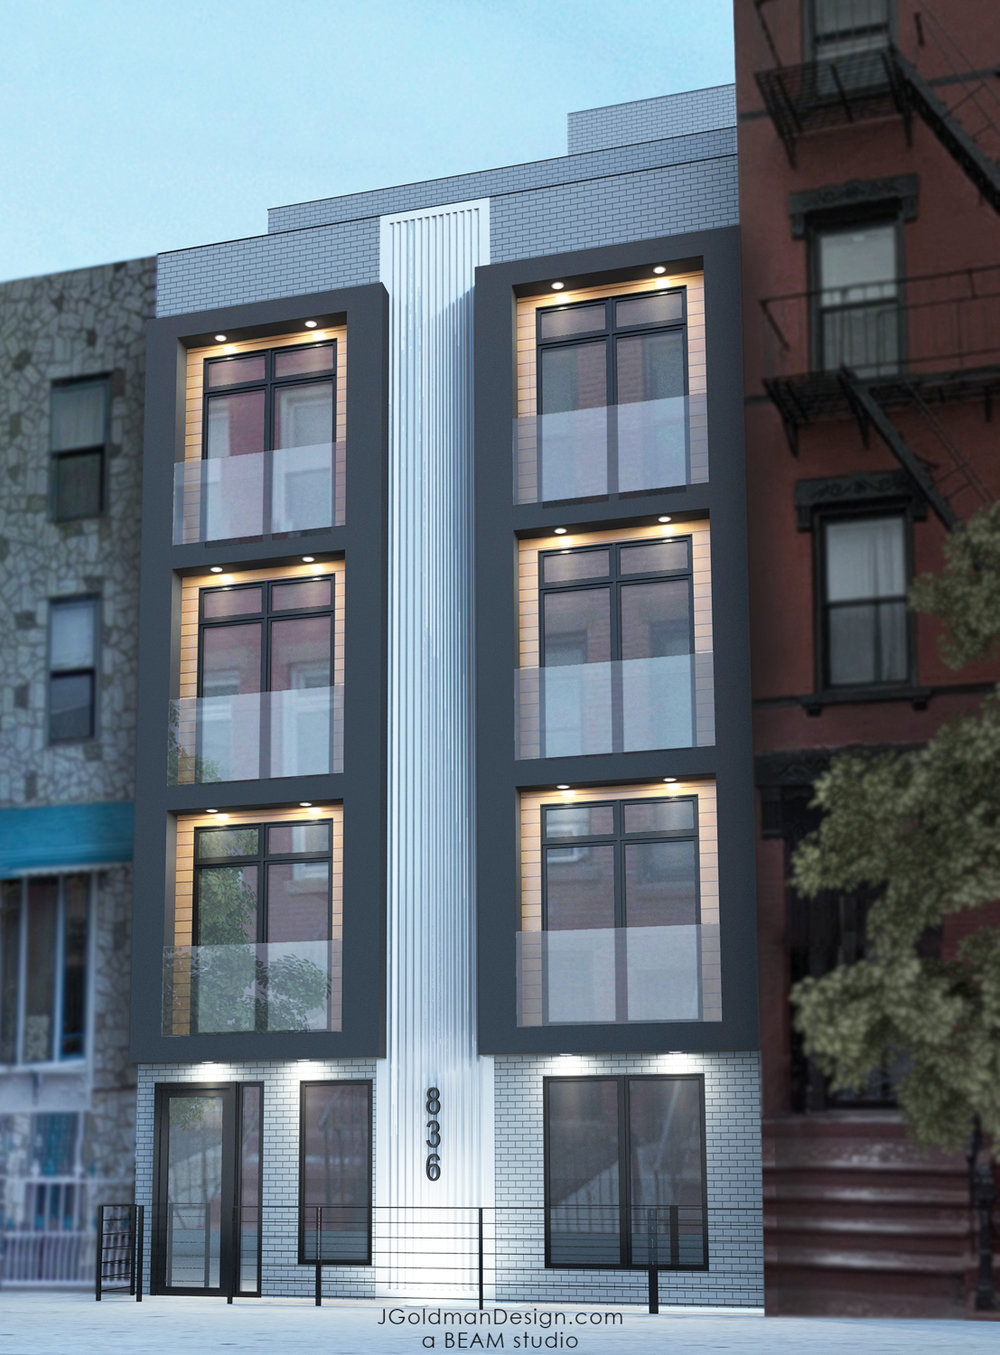 Beam Group Unveils Their Newly Designed 836 Monroe Street In Ocean Hill, Brooklyn